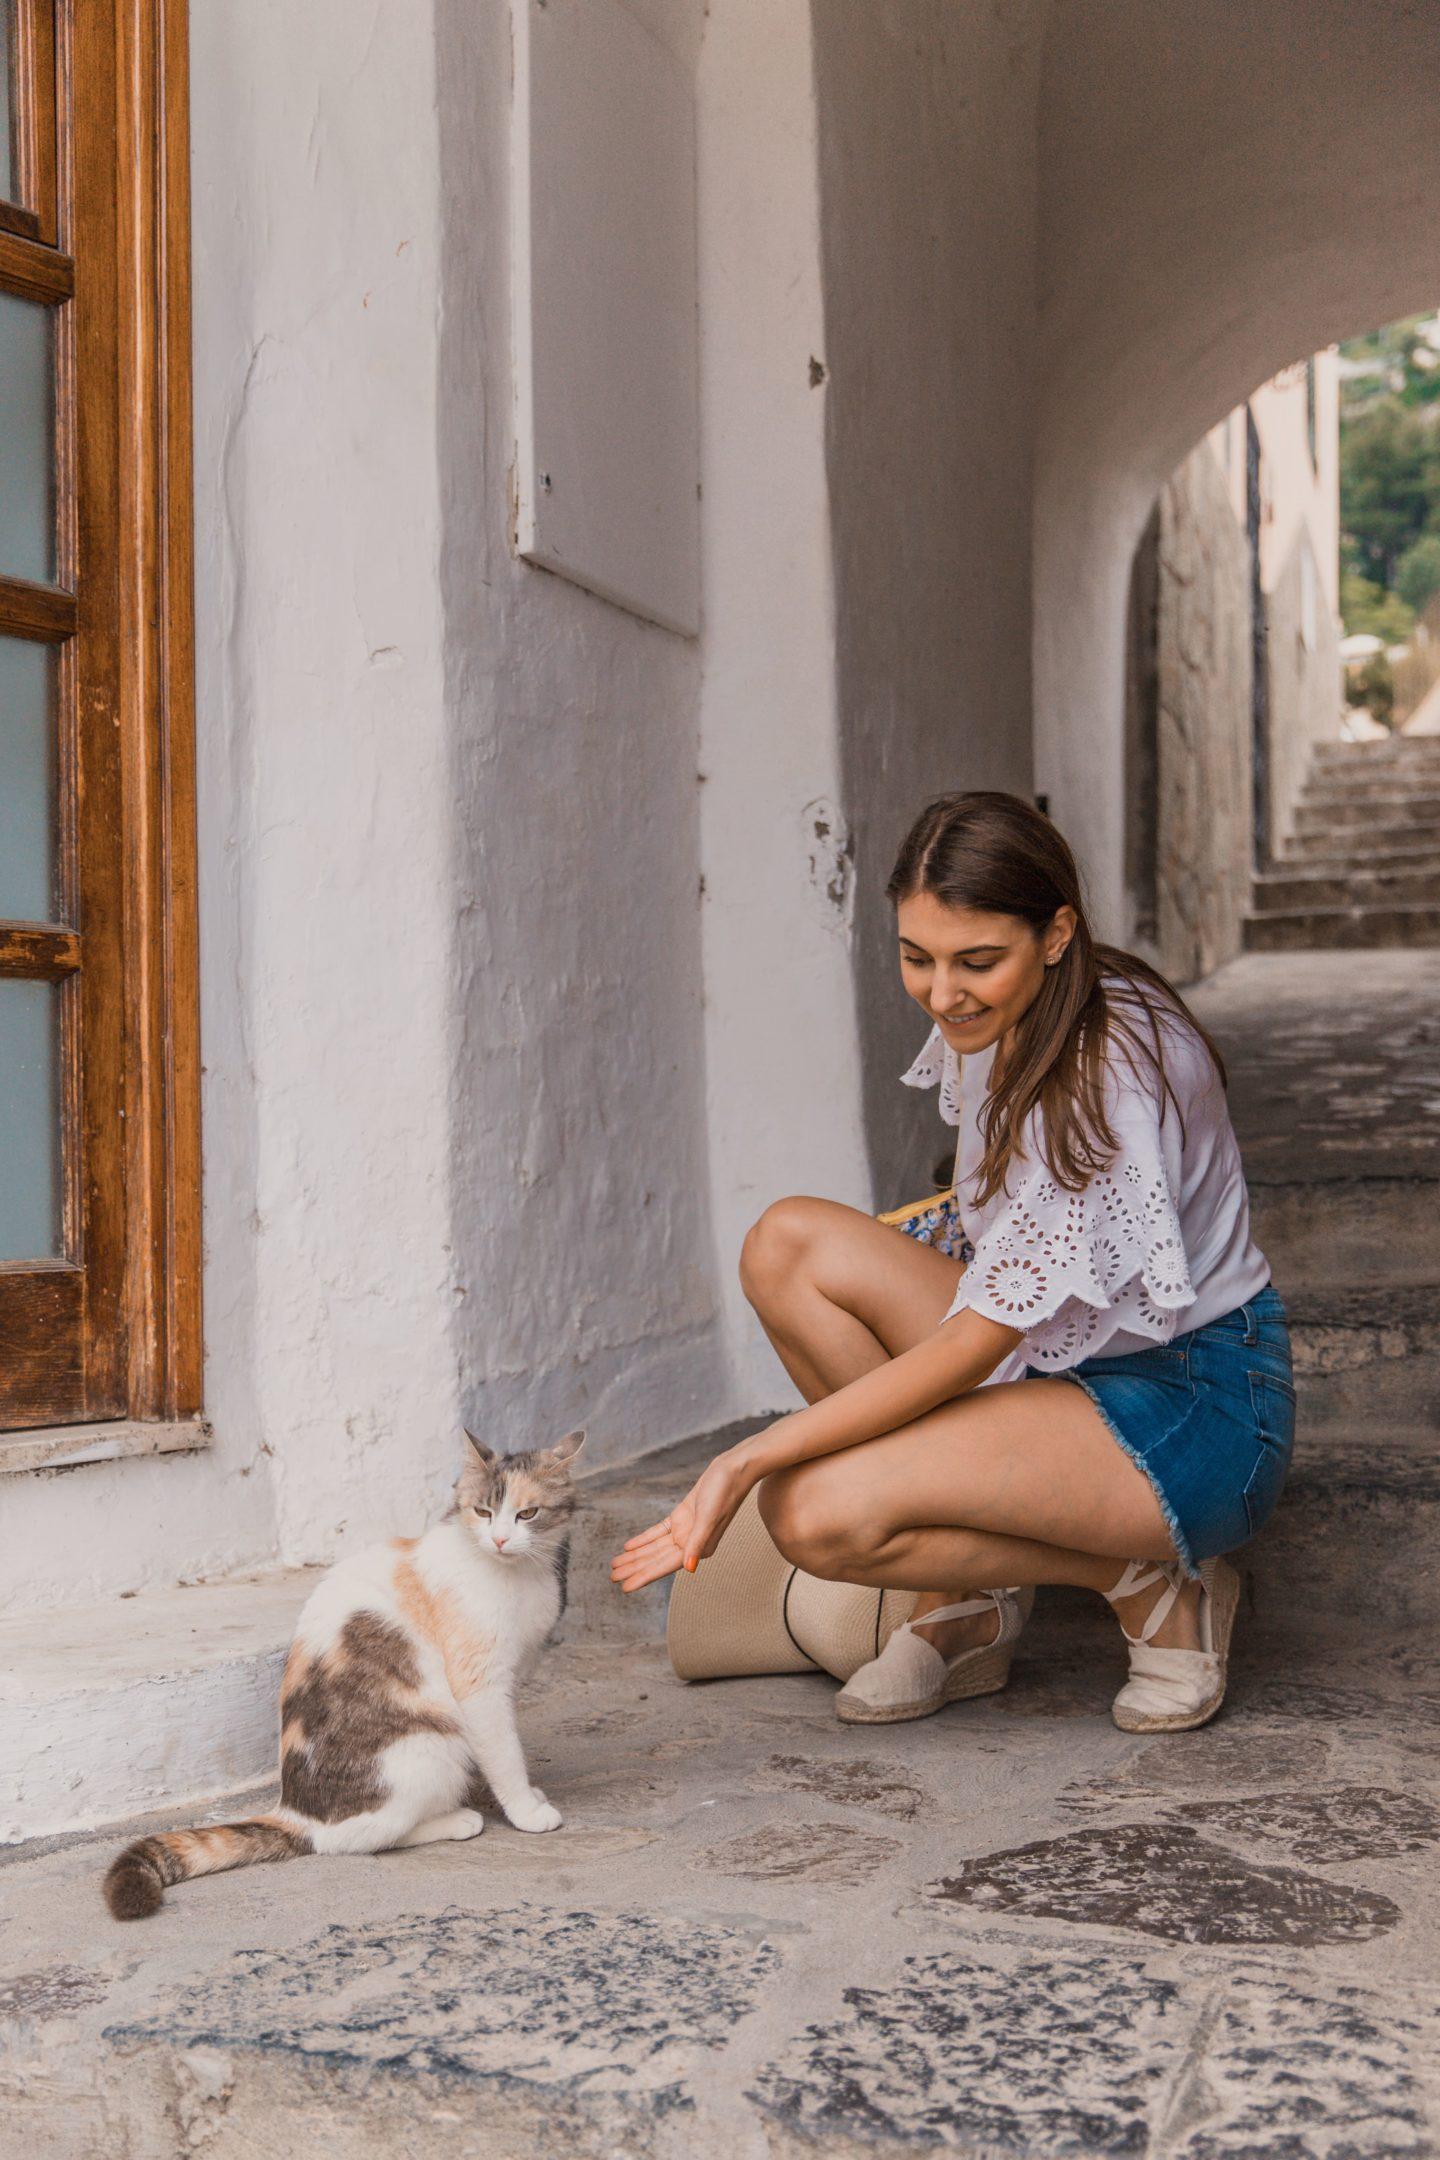 The Best Positano Instagram Shots | 12 Beautiful Shots You Can't Miss: Cats of Positano